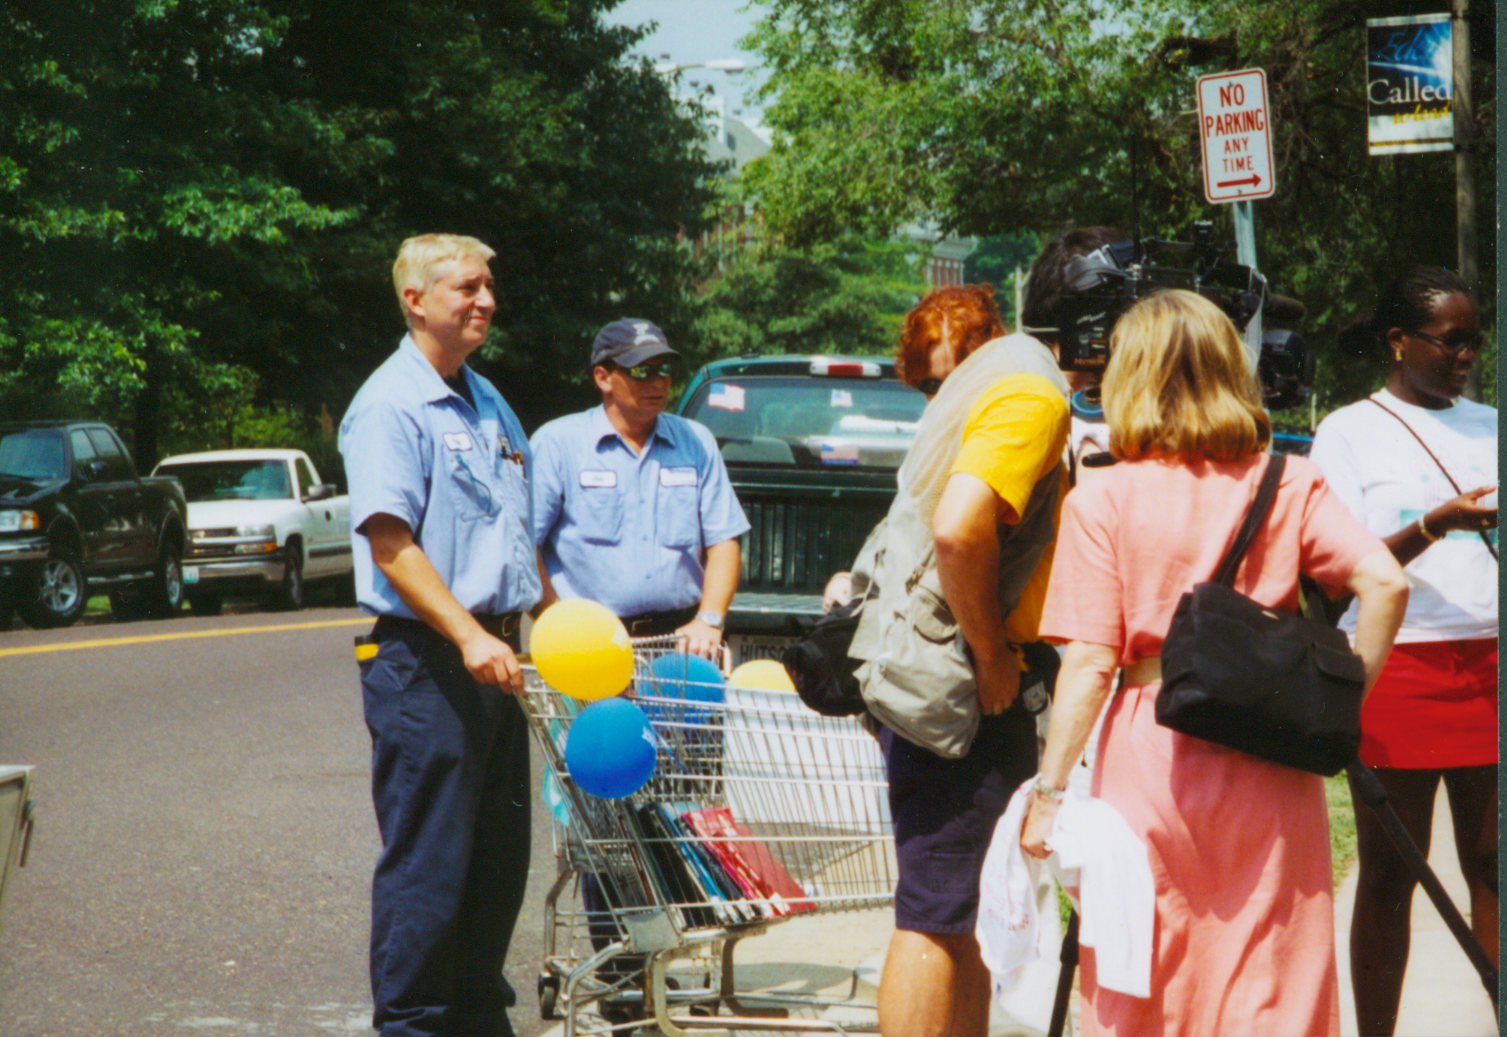 [Color photograph of facilities personnel with grocery carts]